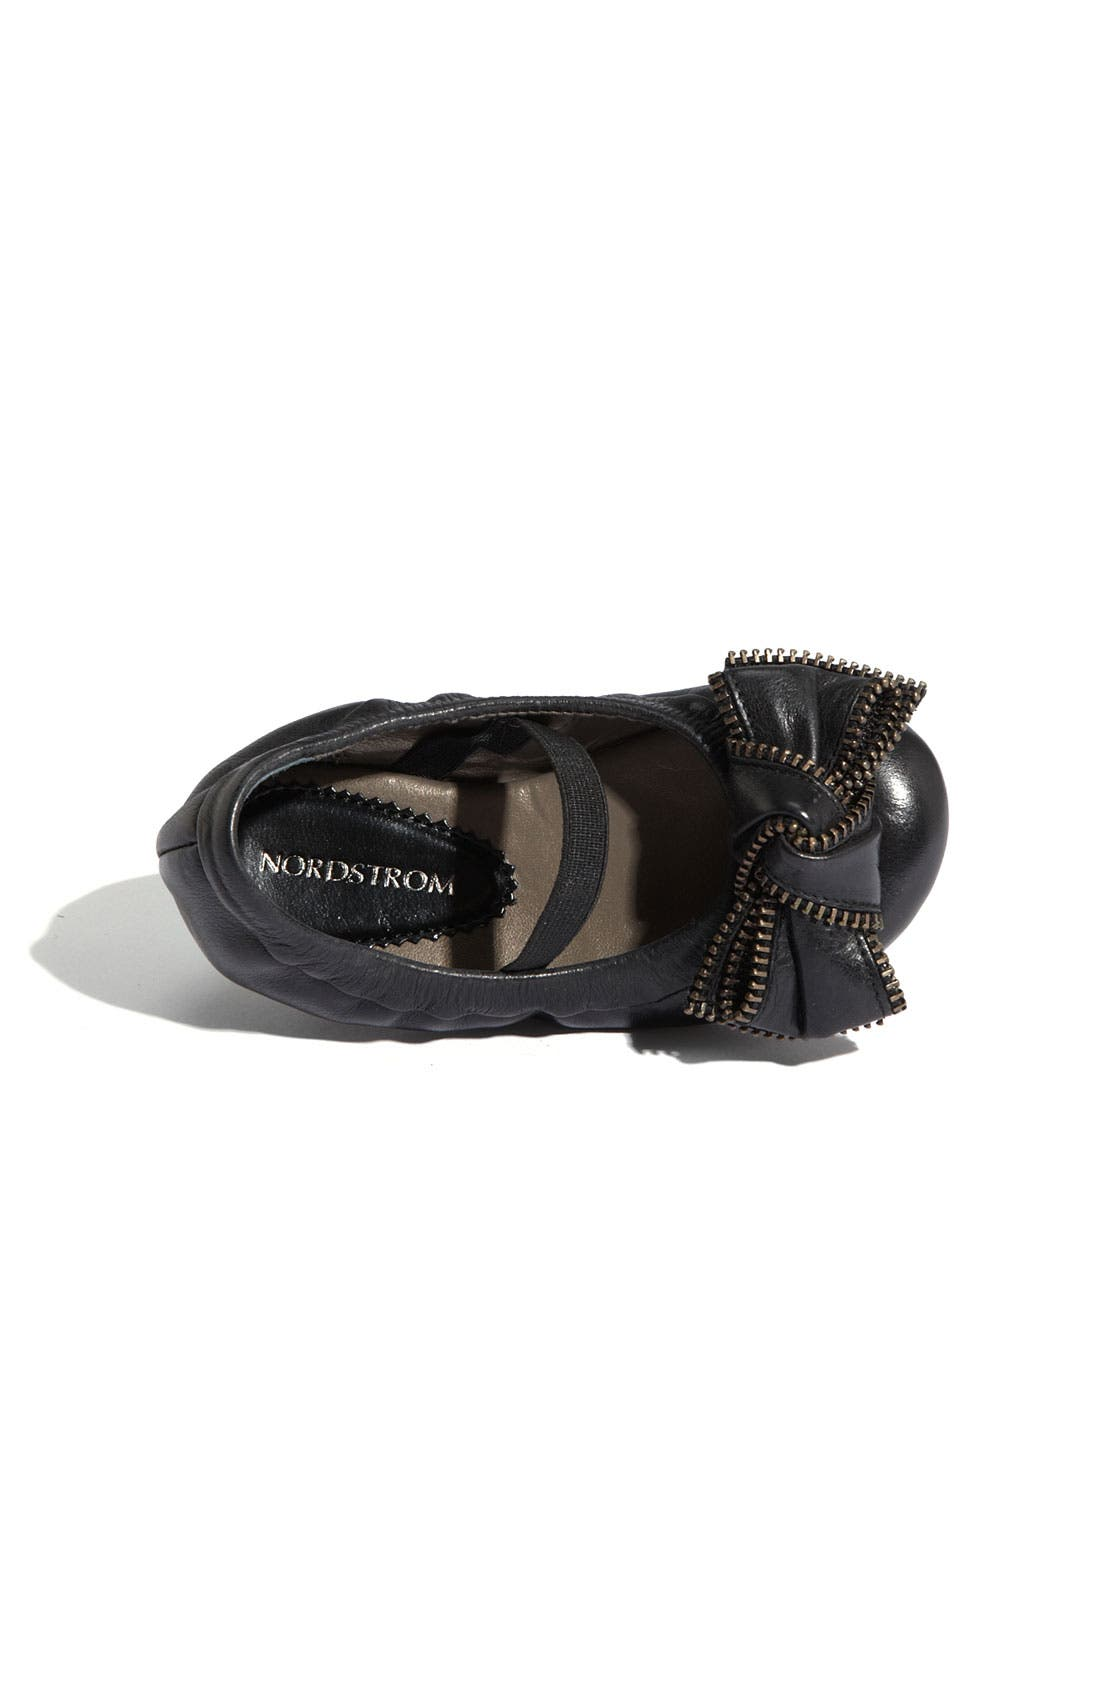 Alternate Image 3  - Nordstrom 'Tessa' Flat (Walker, Toddler, Little Kid & Big Kid) (Special Purchase)